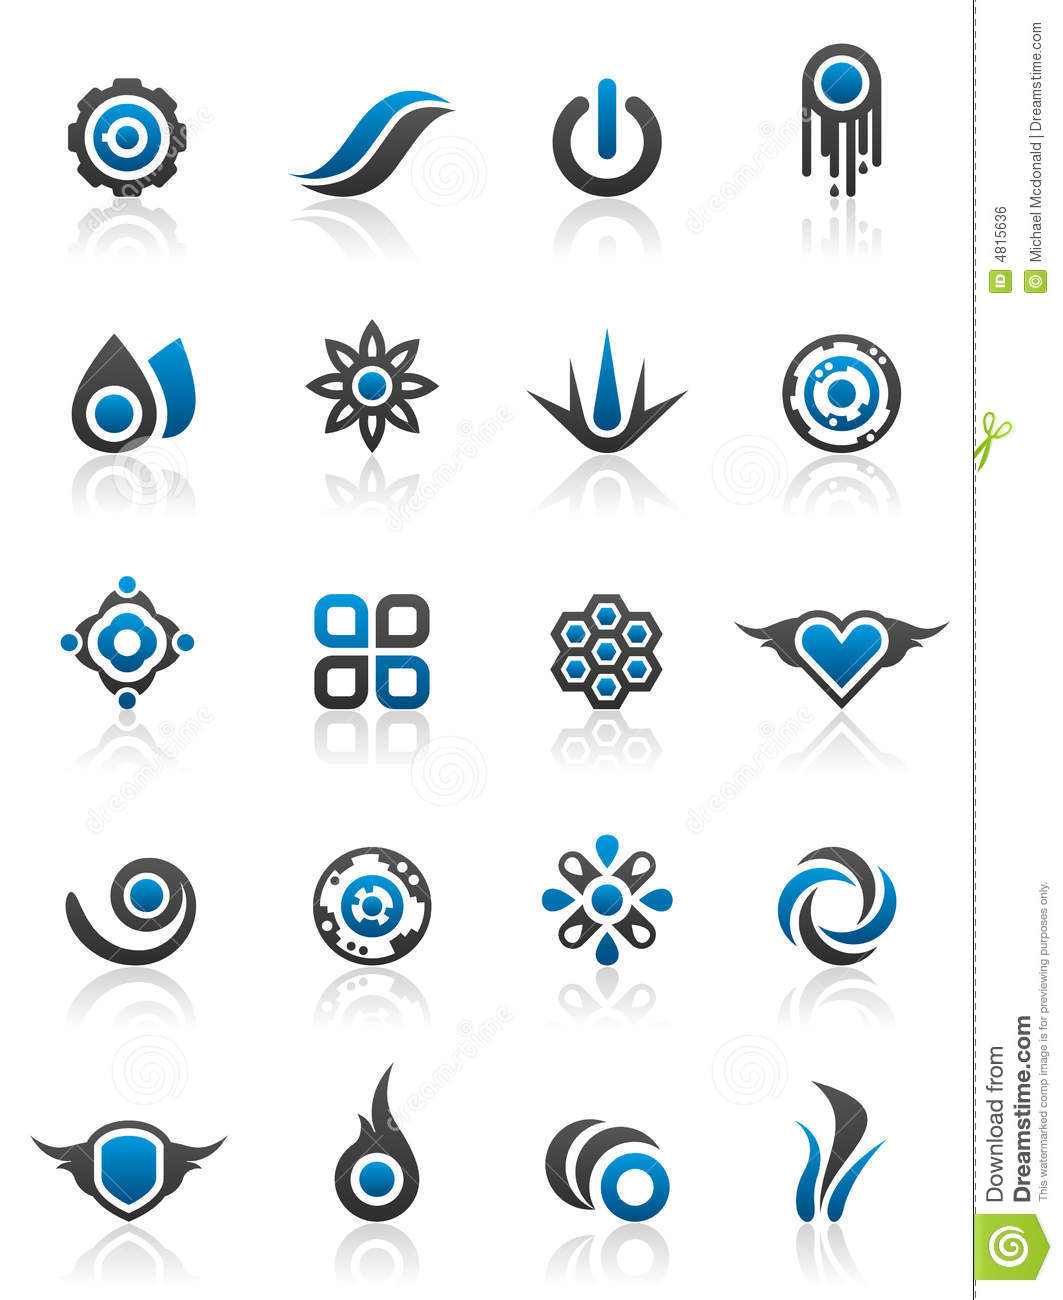 Design elements and graphics